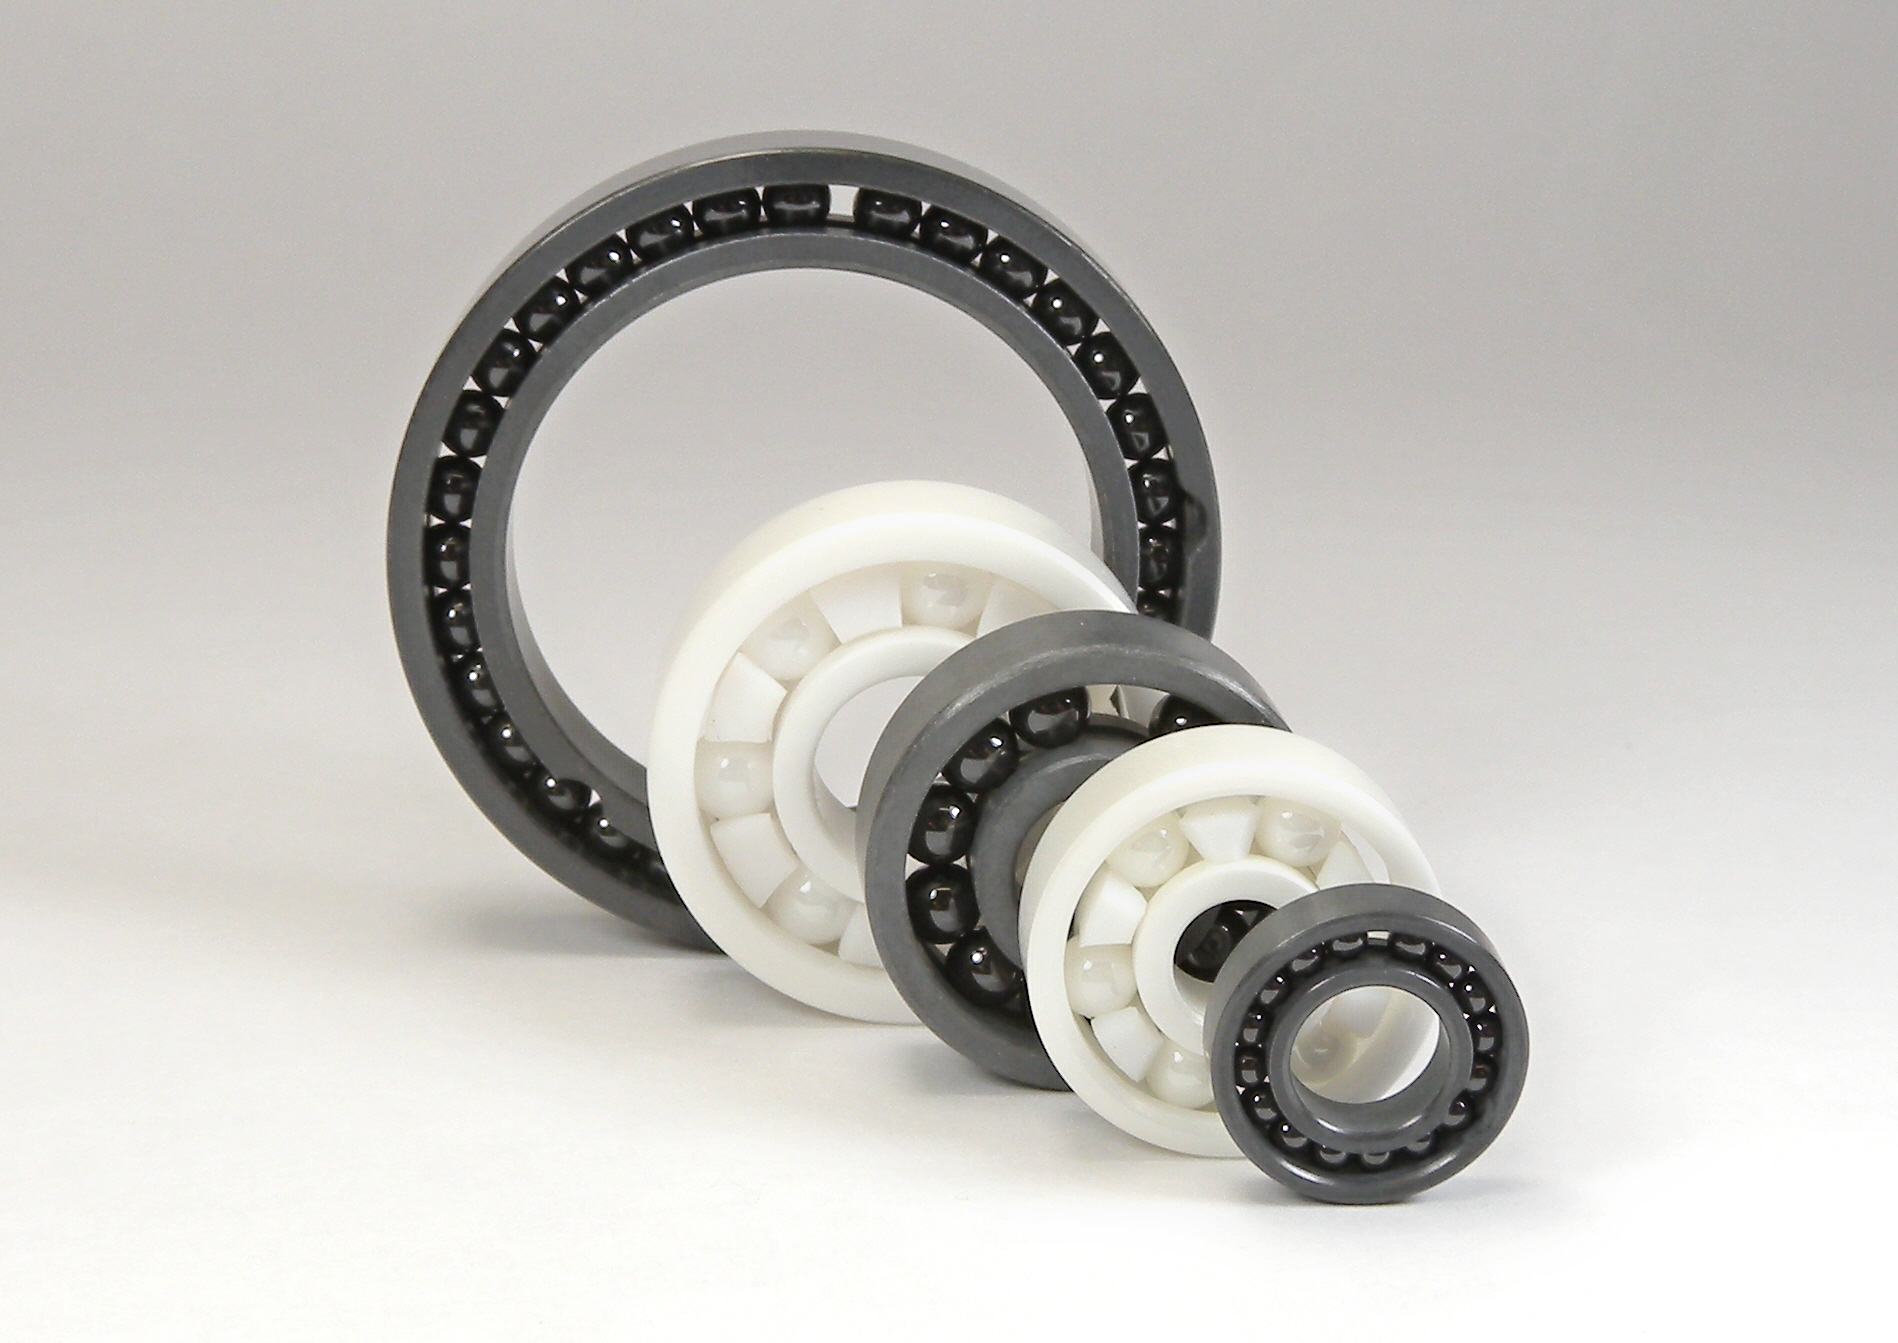 Ceramic bearings are normally supplied with rings and balls made from zirconium dioxide (ZrO2) or silicon nitride (Si3N4